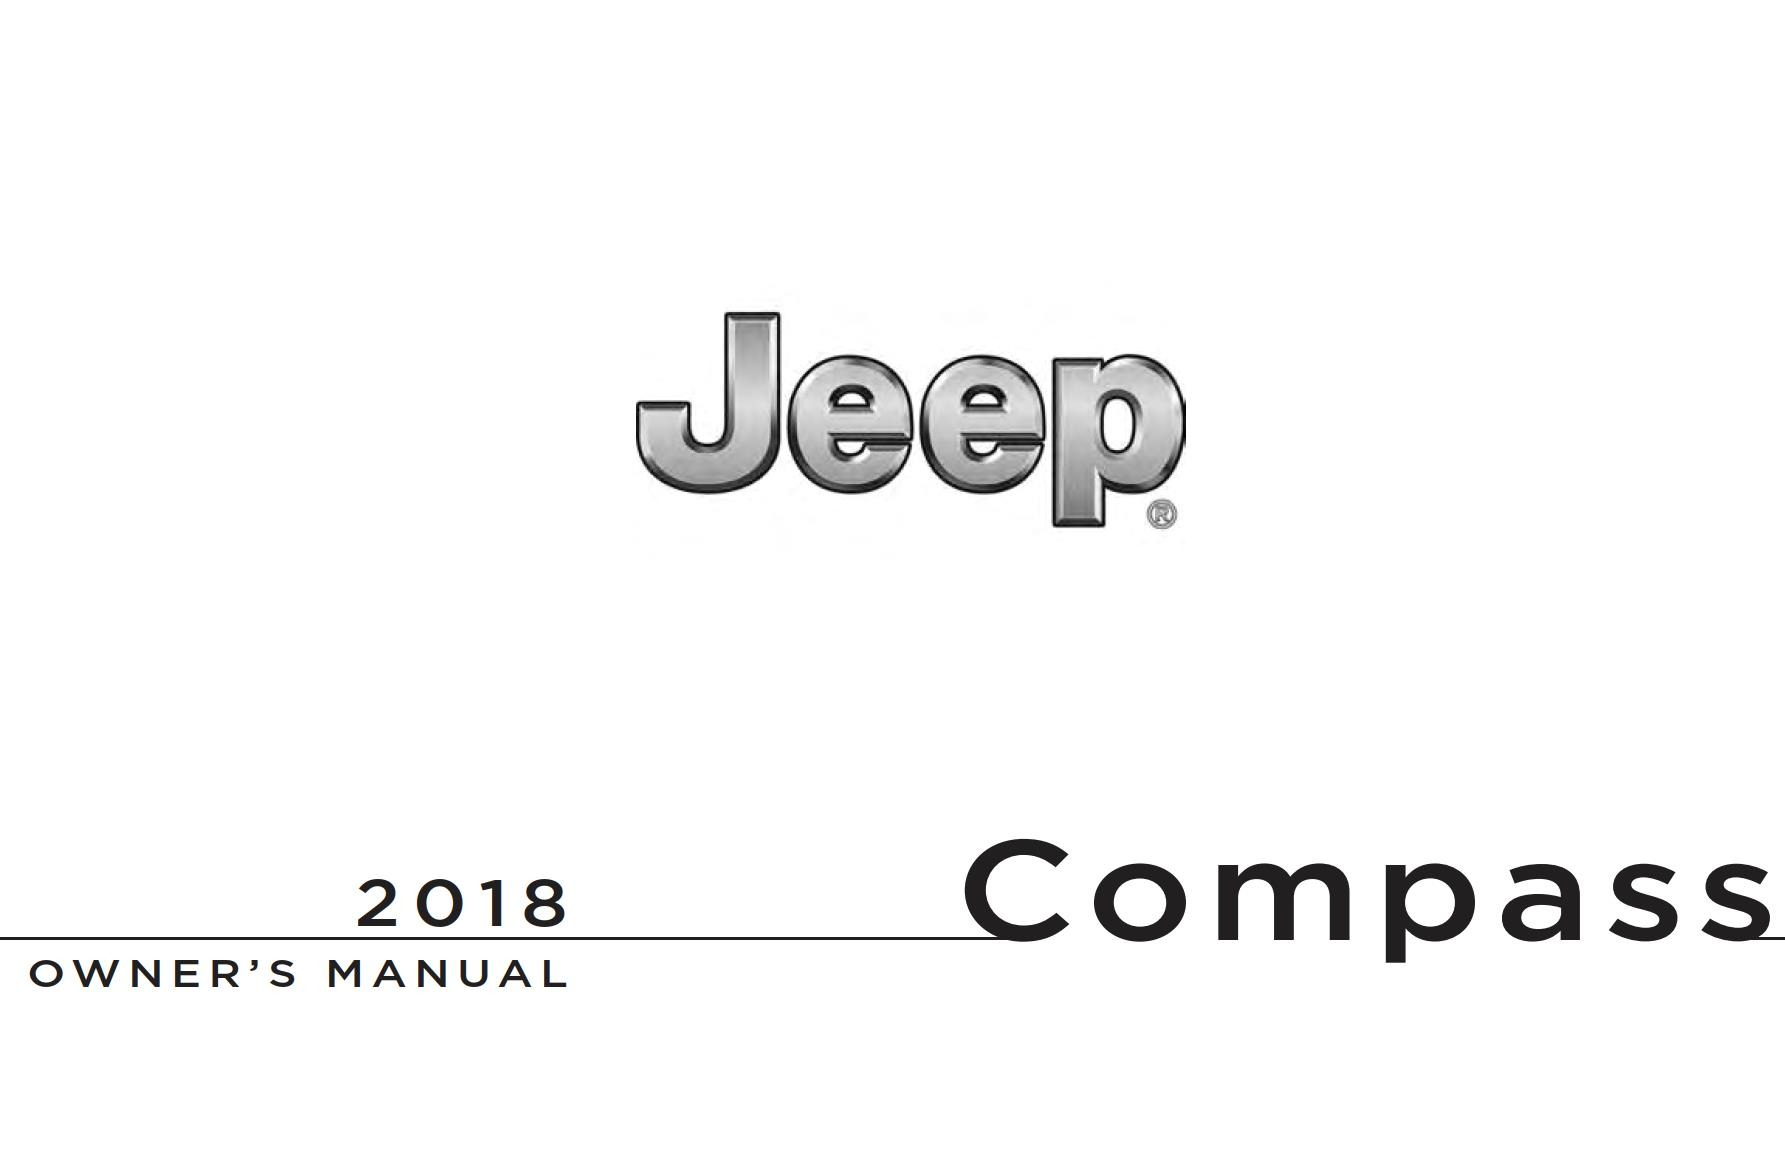 Jeep Compass 2018 Owner's Manual